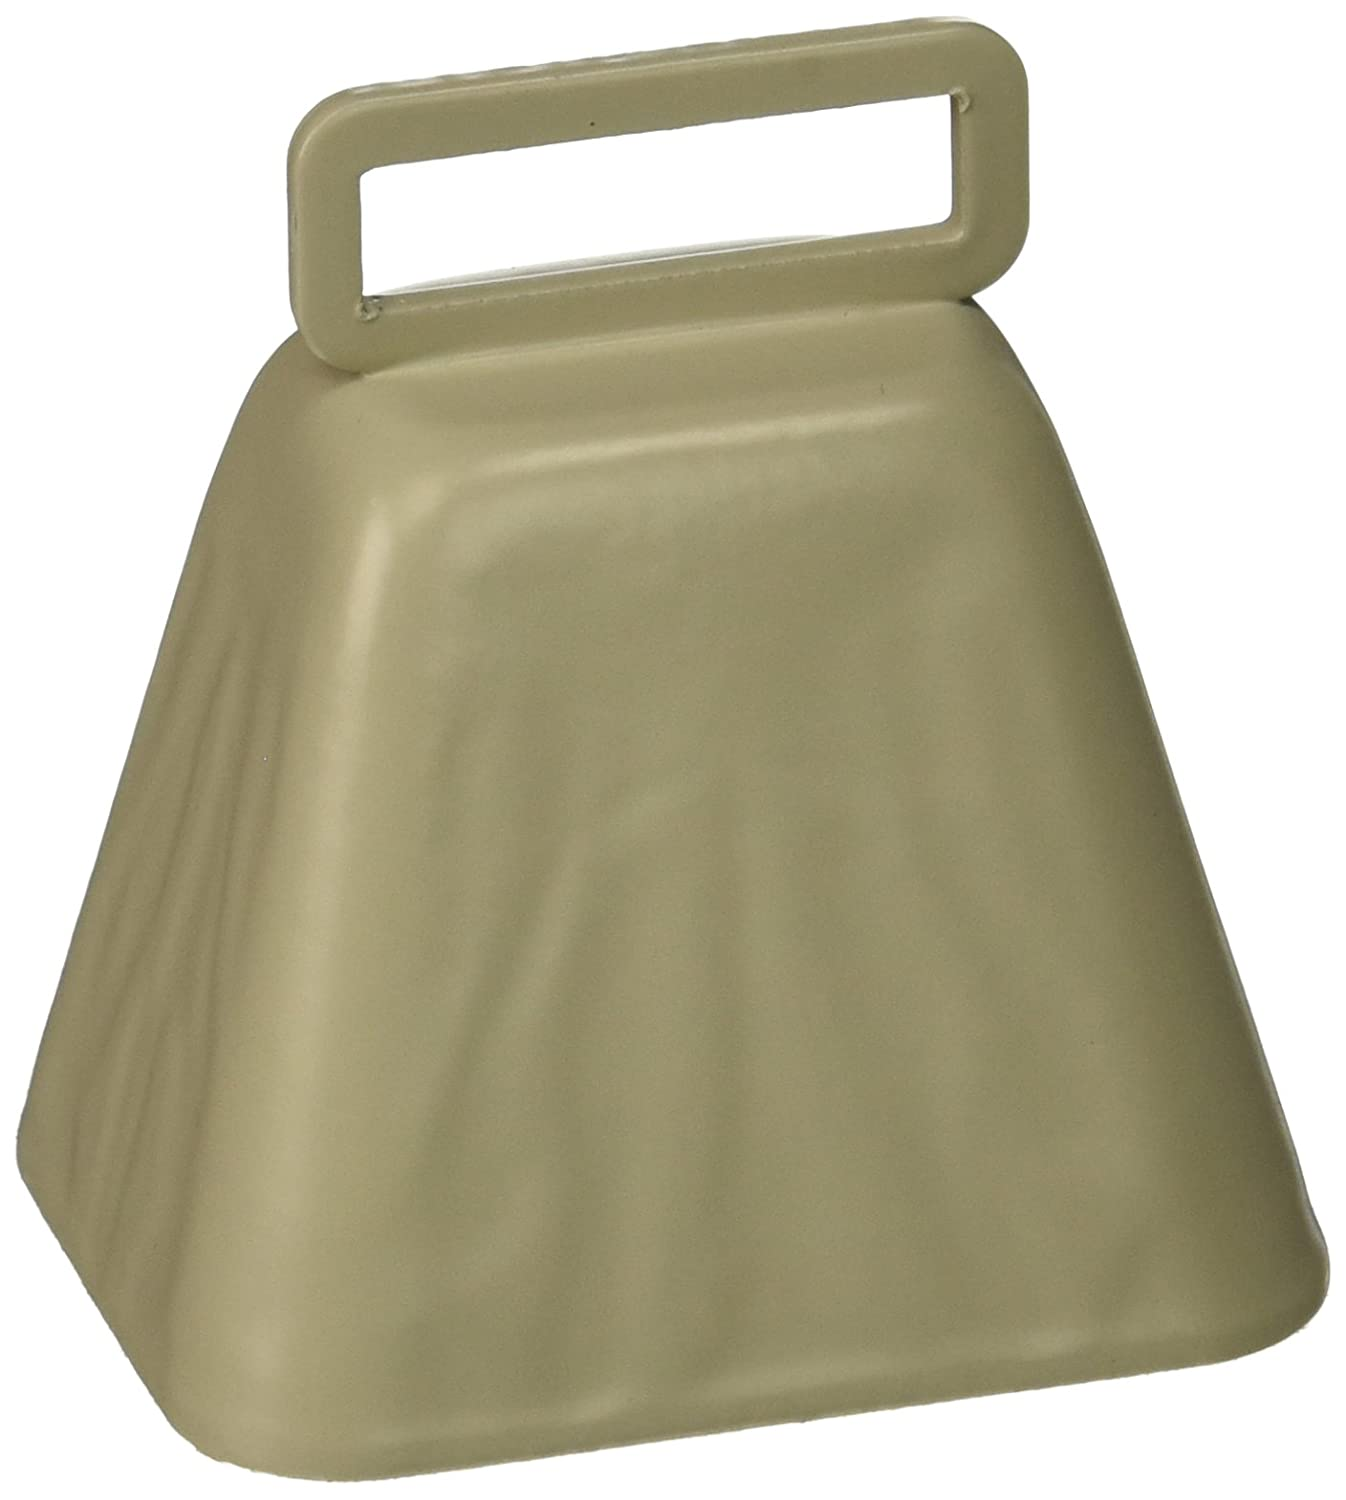 SpeeCo Long Distance Cow Bell GB Industrial Direct S90070900/CB900709